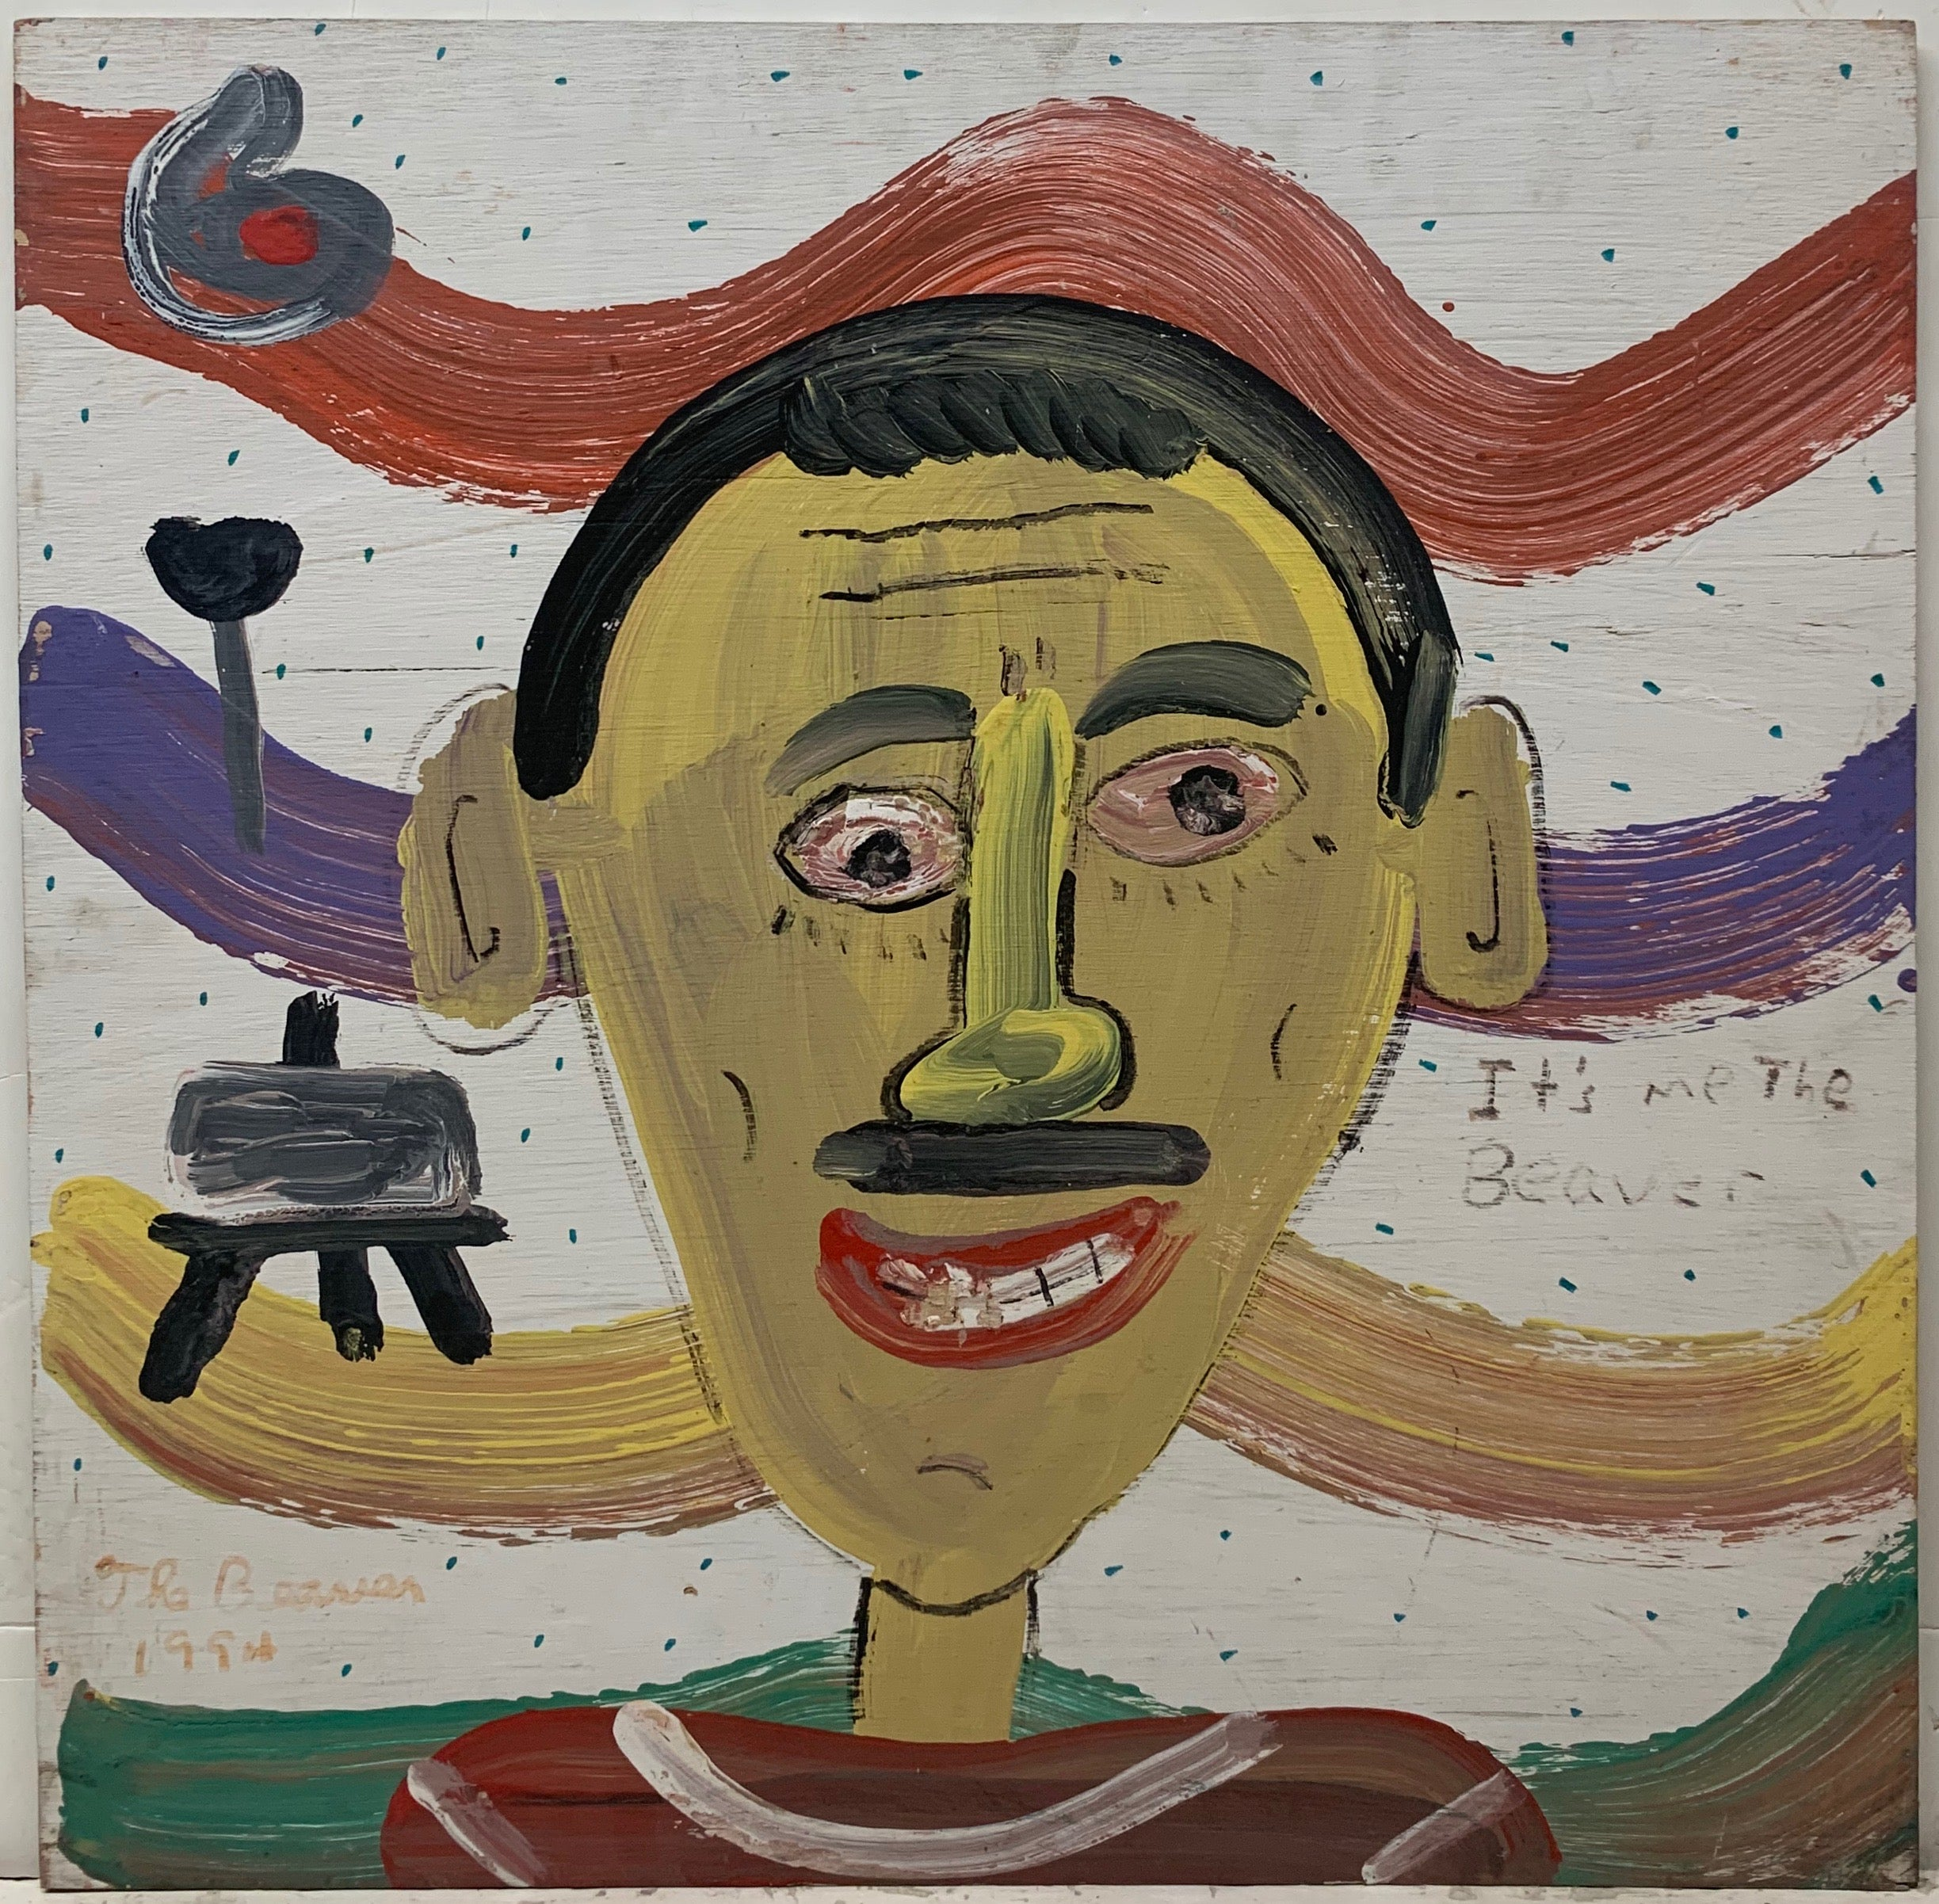 A self-portrait by the Beaver, set in front of a multi-colored, wavy background with an easel and the number six.